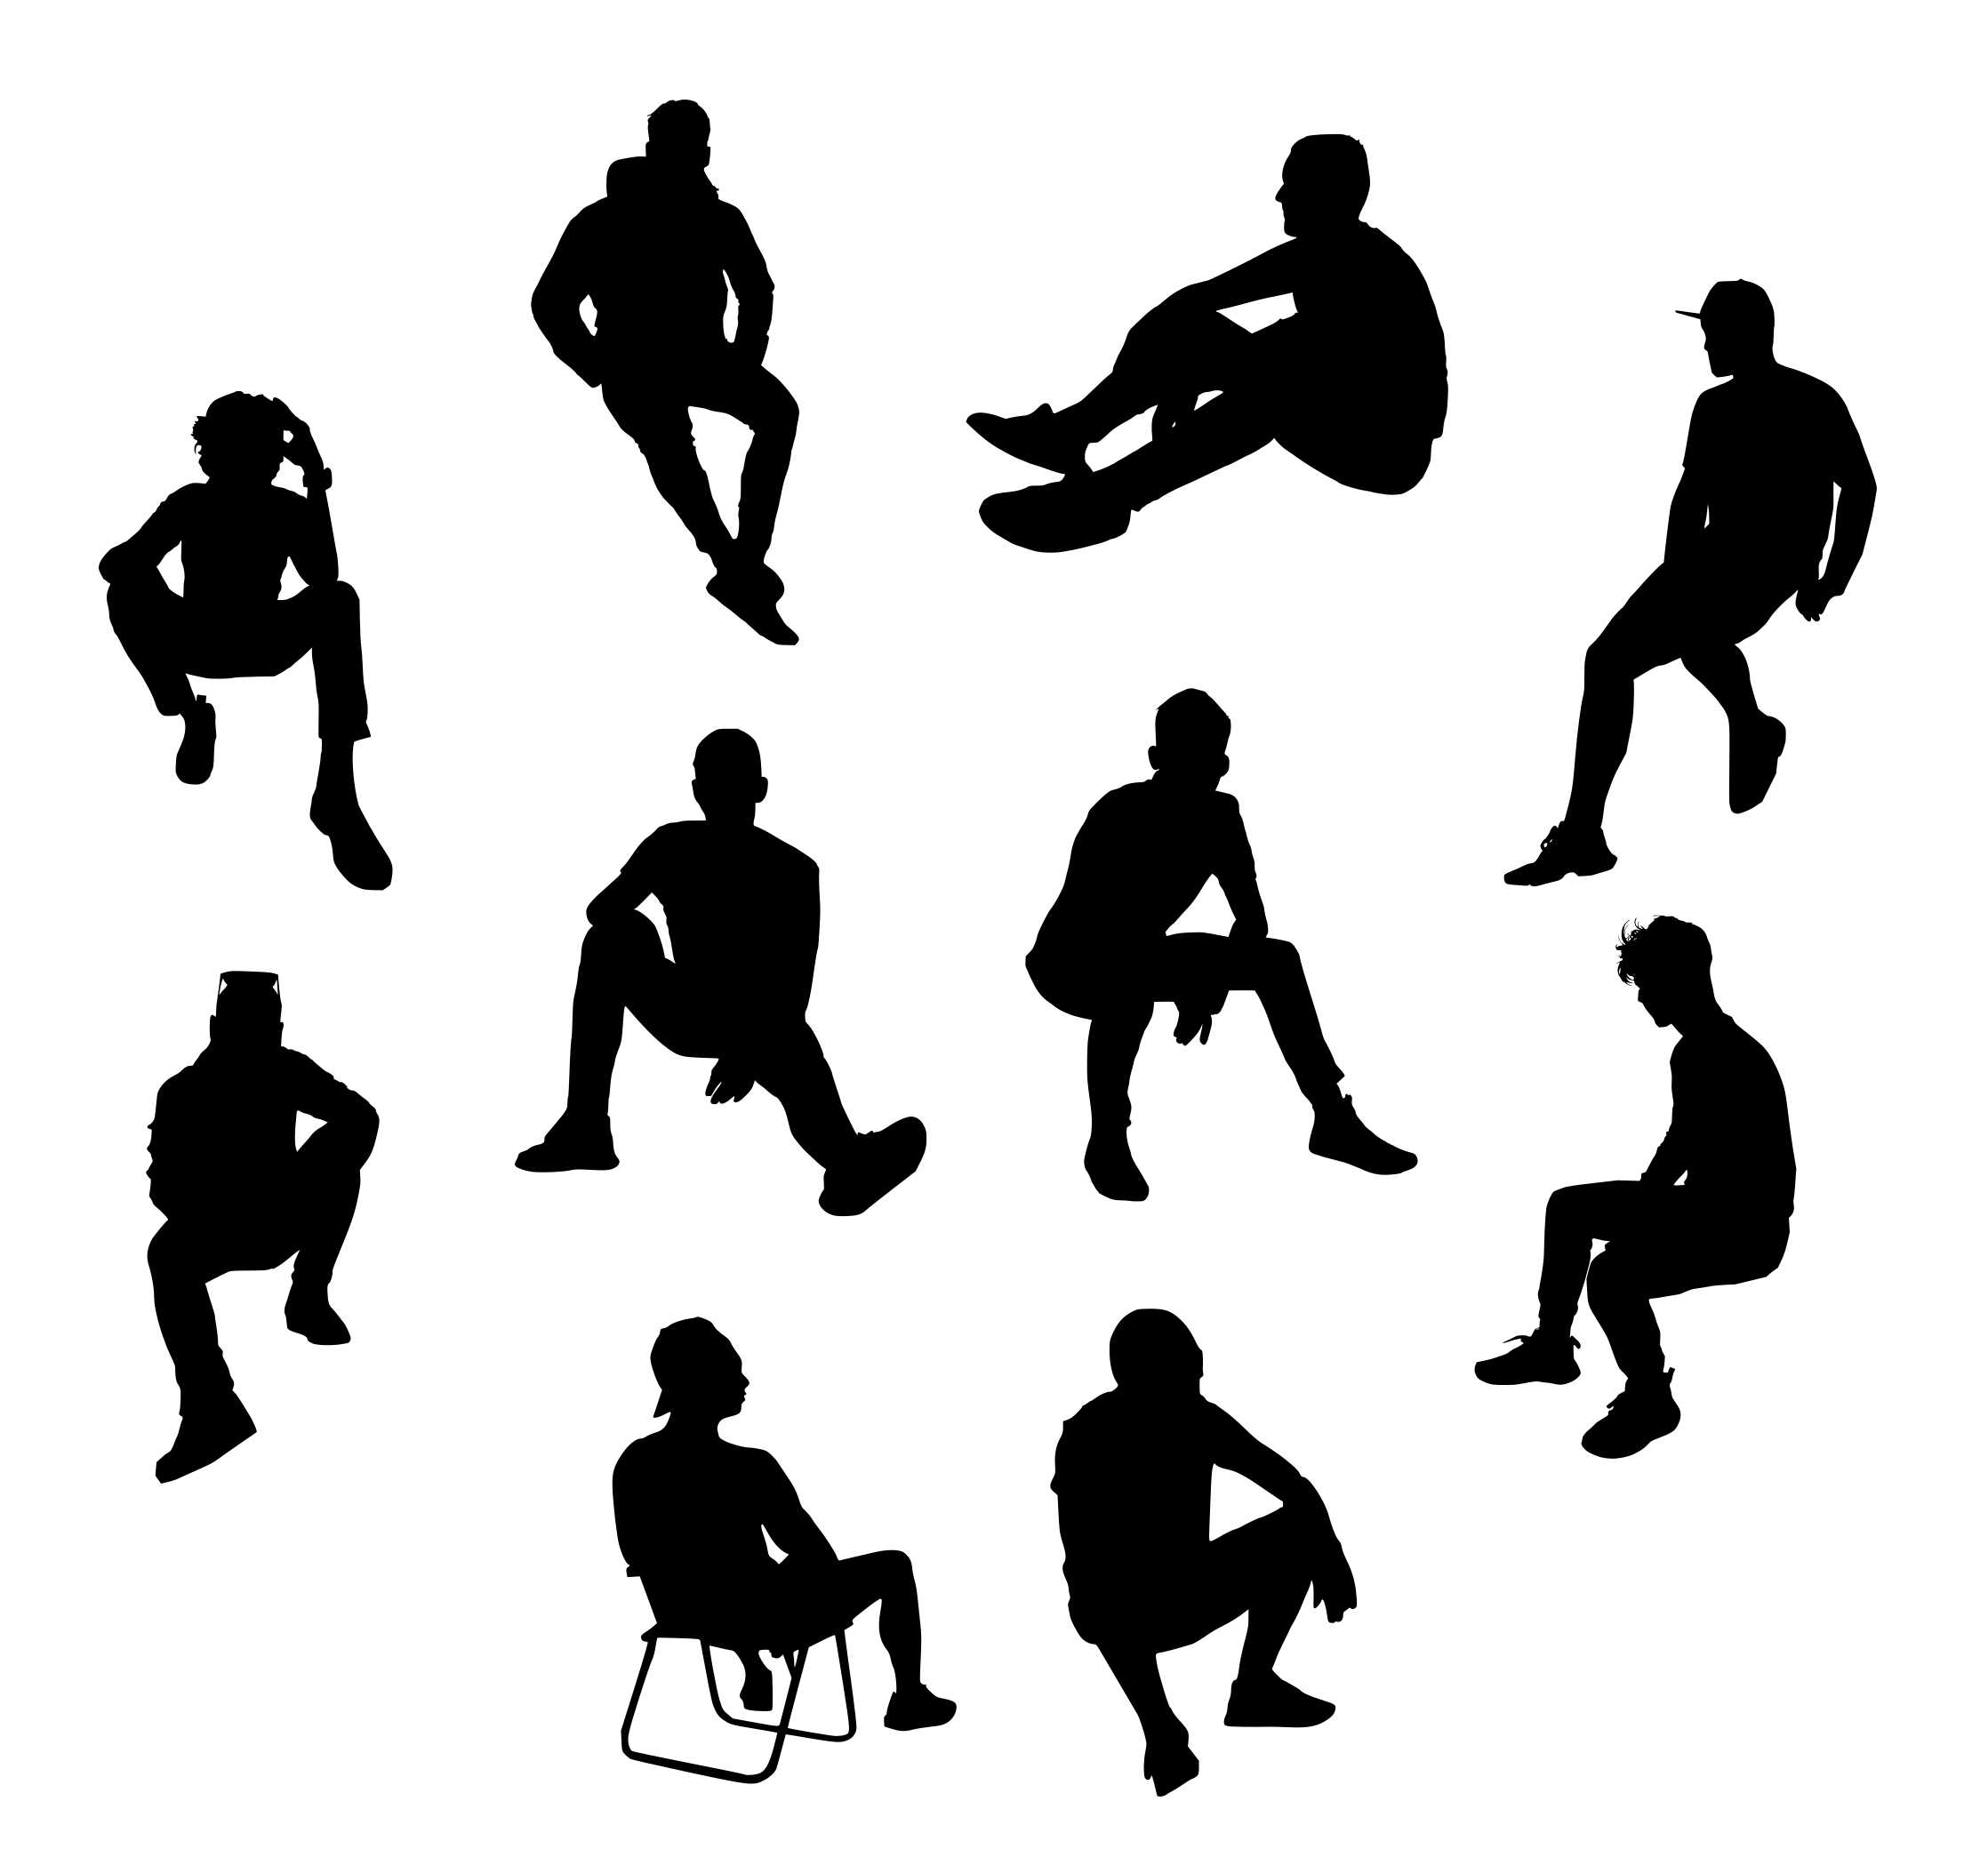 10-man-sitting-silhouette-cover.jpg